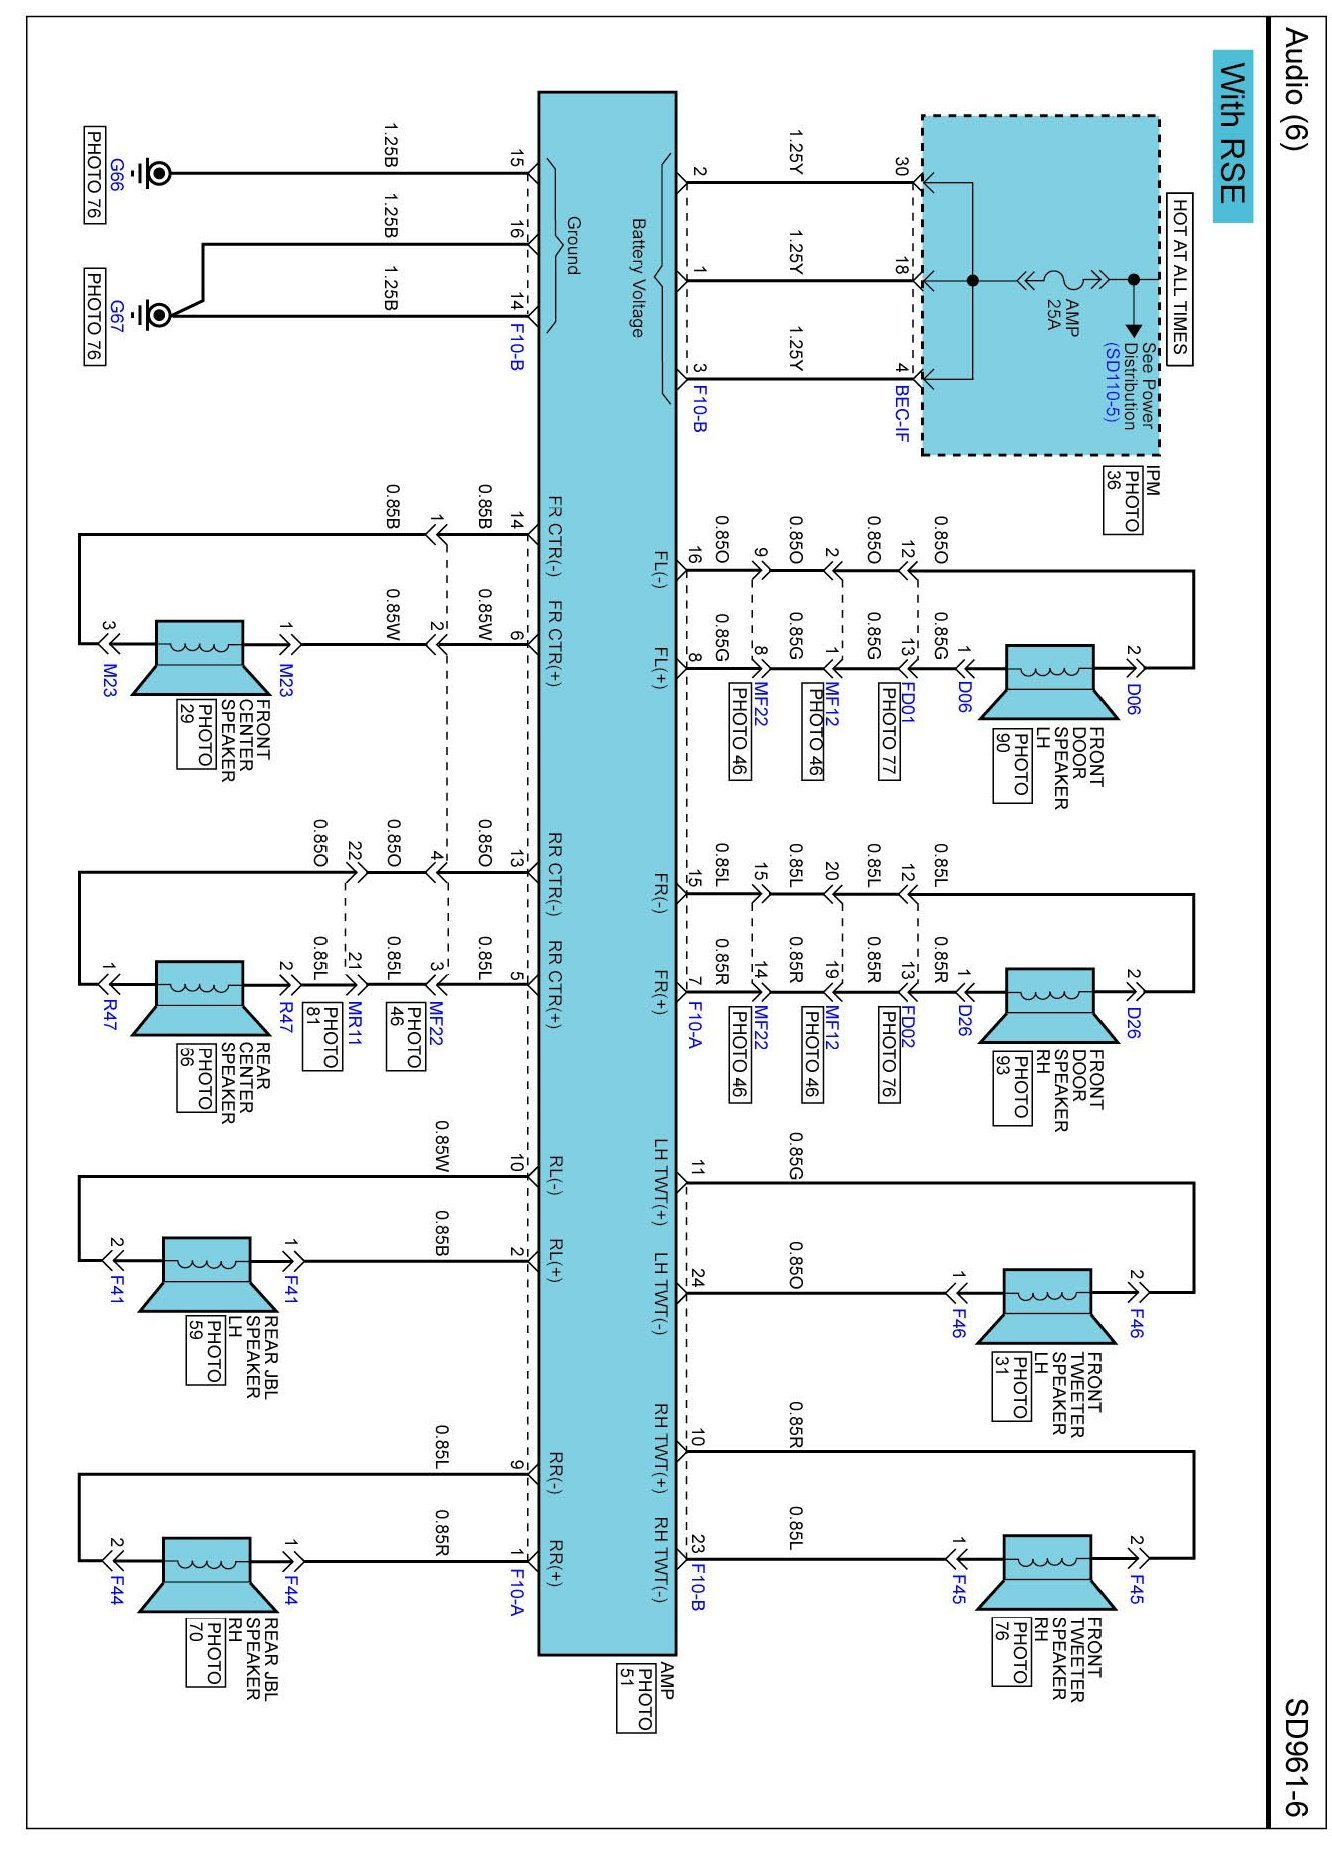 Need A Wiring Diagram For The Infinity Sound System On 2010 Sedona Kia Pregio Electrical Graphic